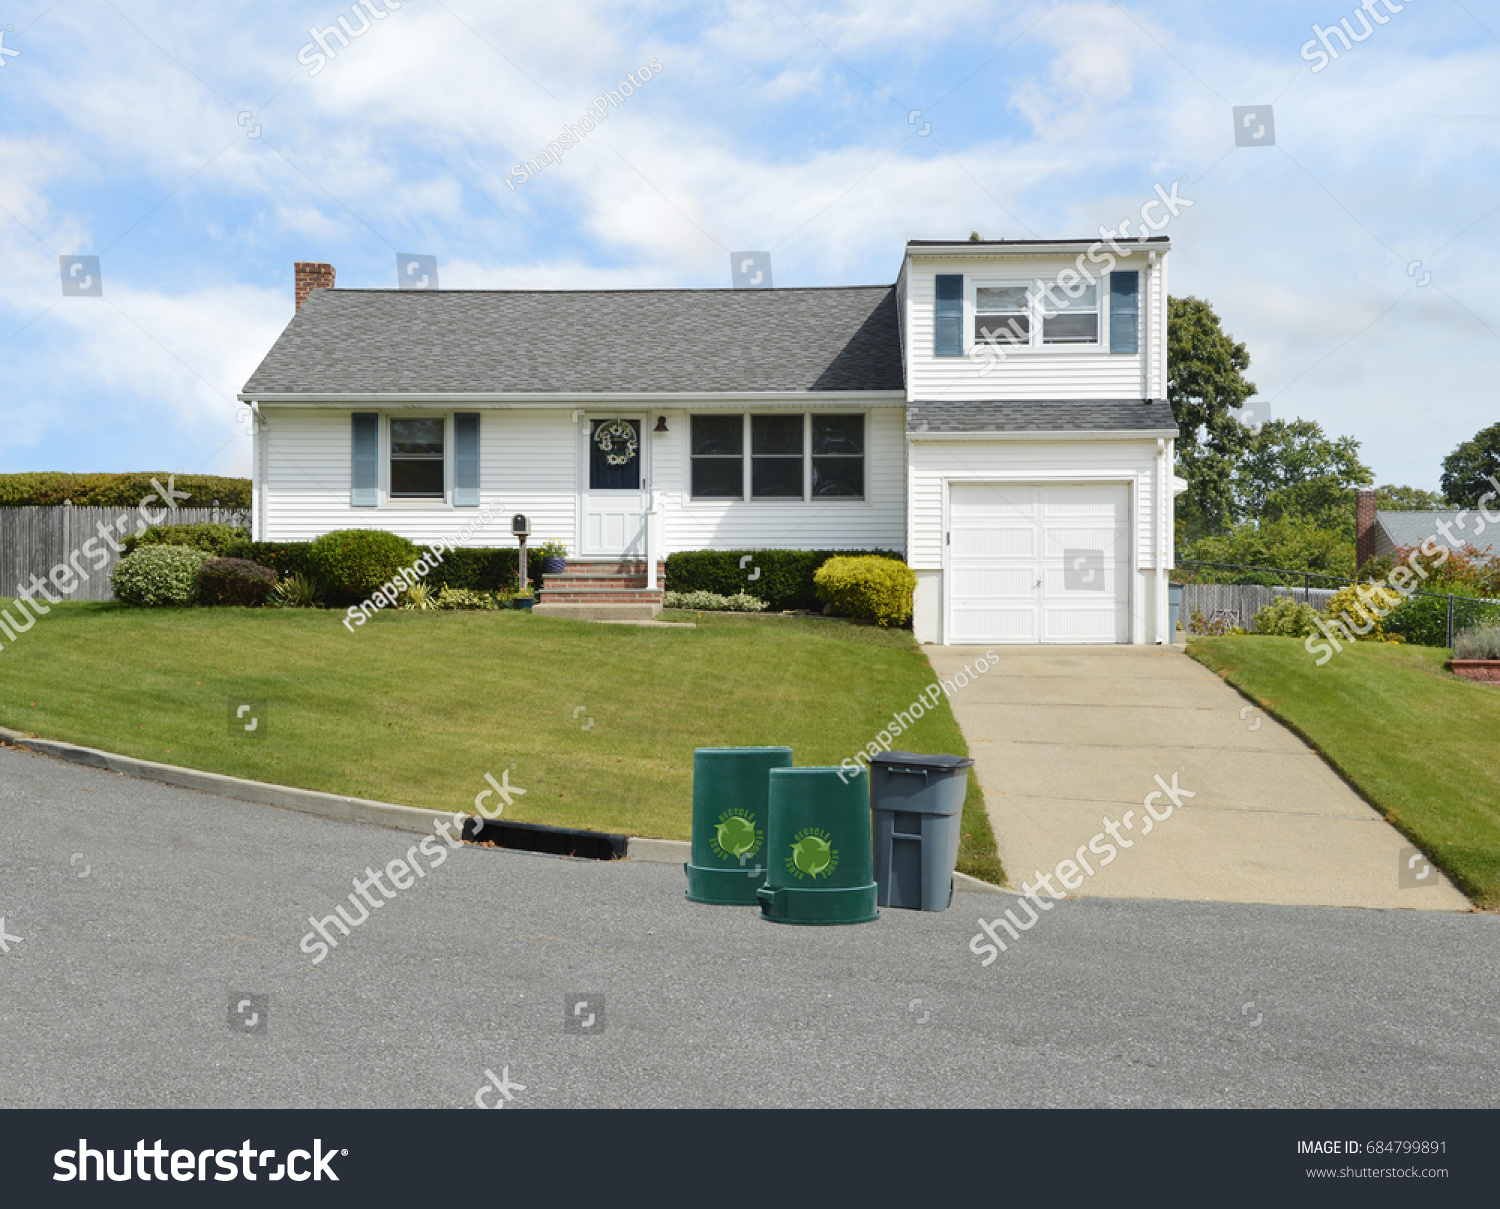 Garage Home Extension Recycle Trash Cans Suburban Bungalow Home Stock Photo Edit Now